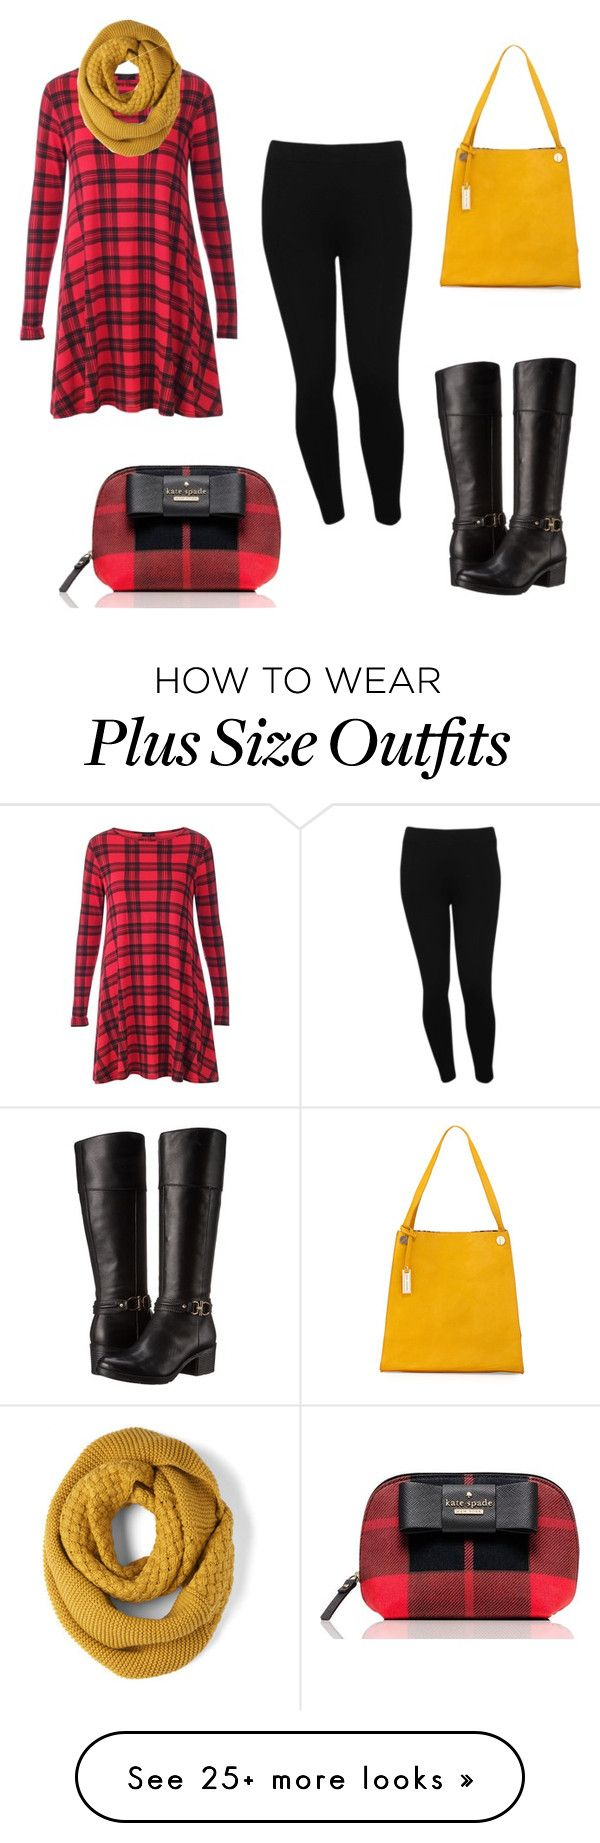 how to wear red details without looking frumpy 1 - how-to-wear-red-details-without-looking-frumpy-1